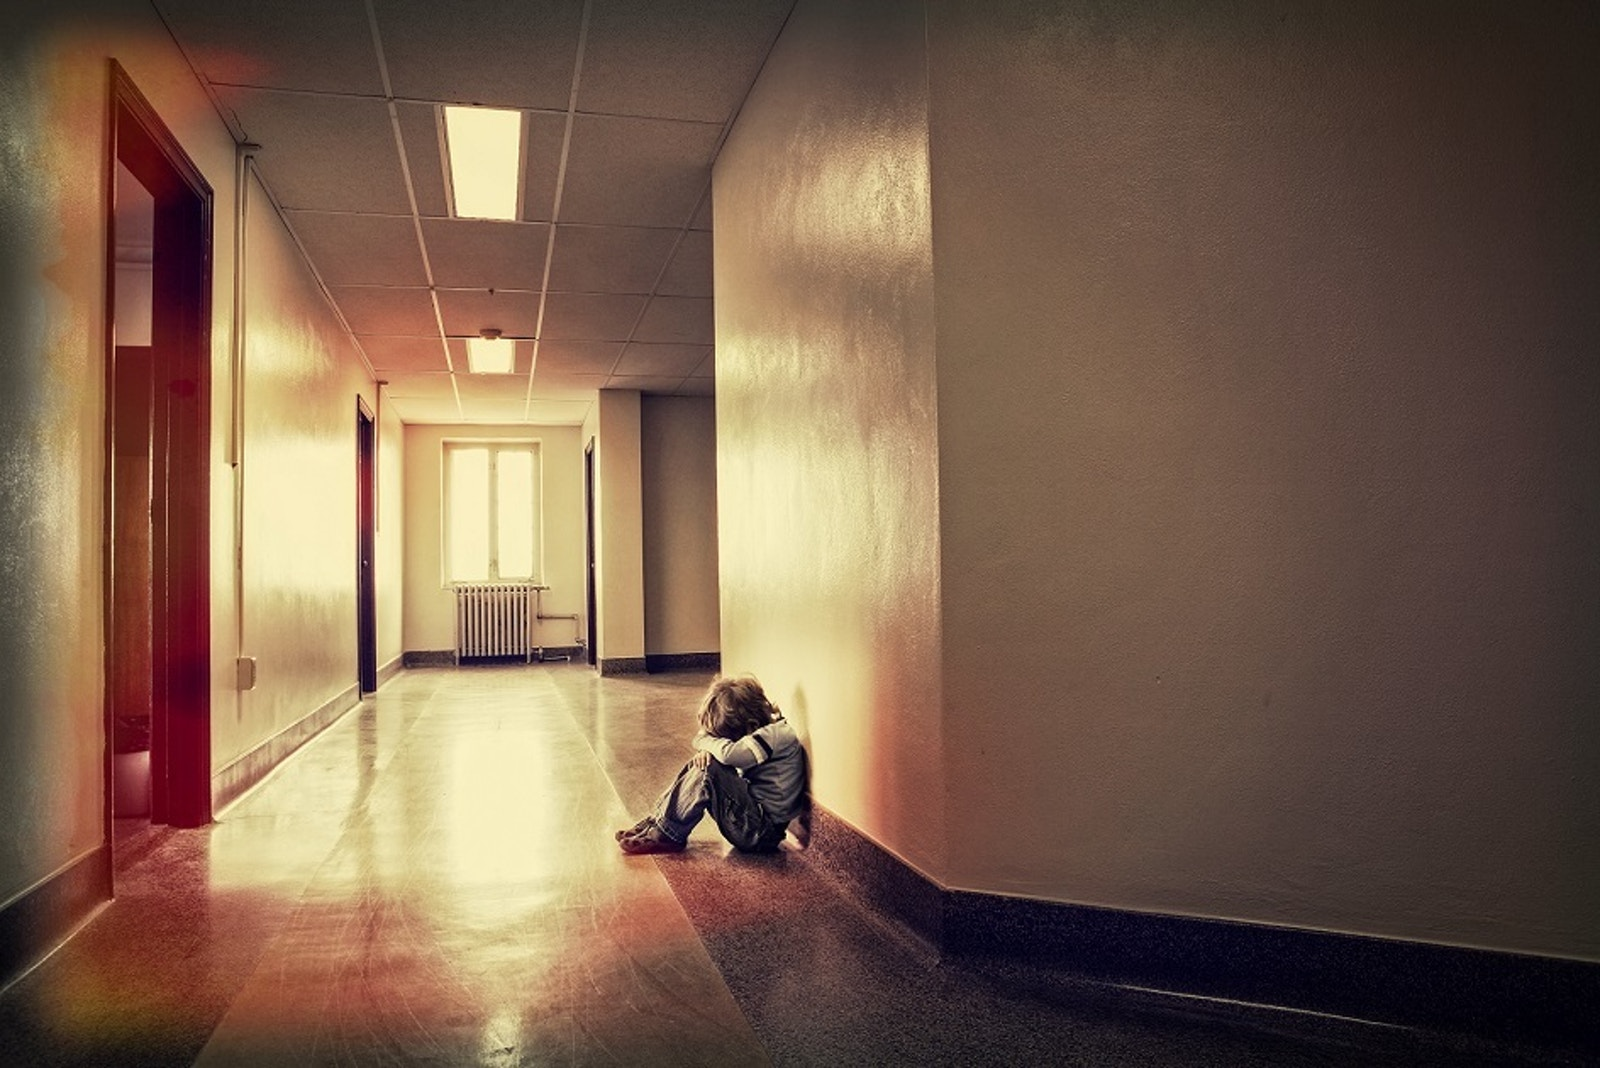 Child in hallway